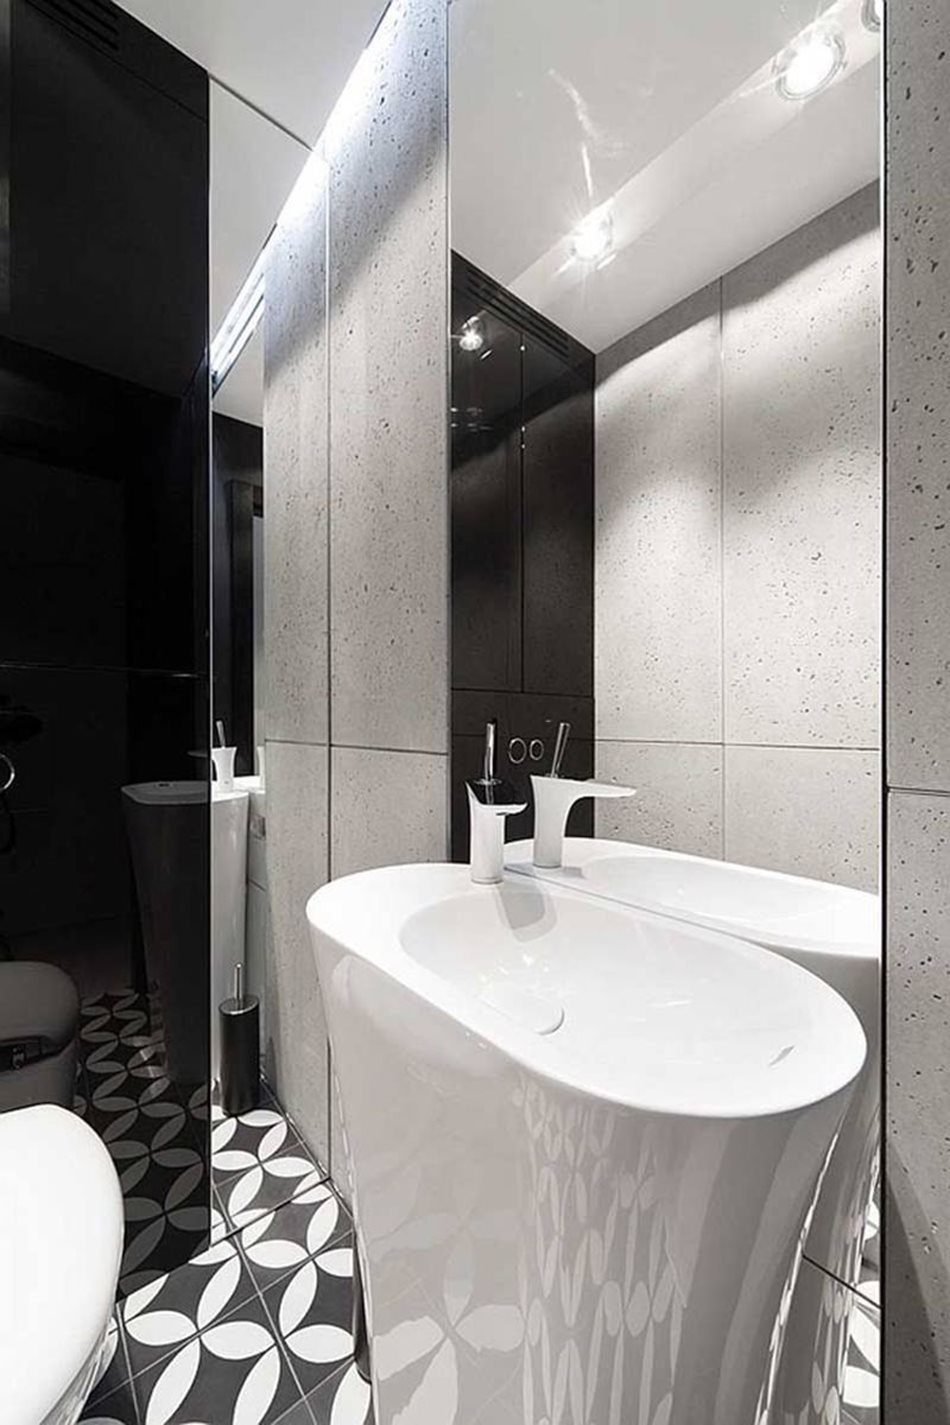 Apartment interior design in black and white colors for Bathroom design help